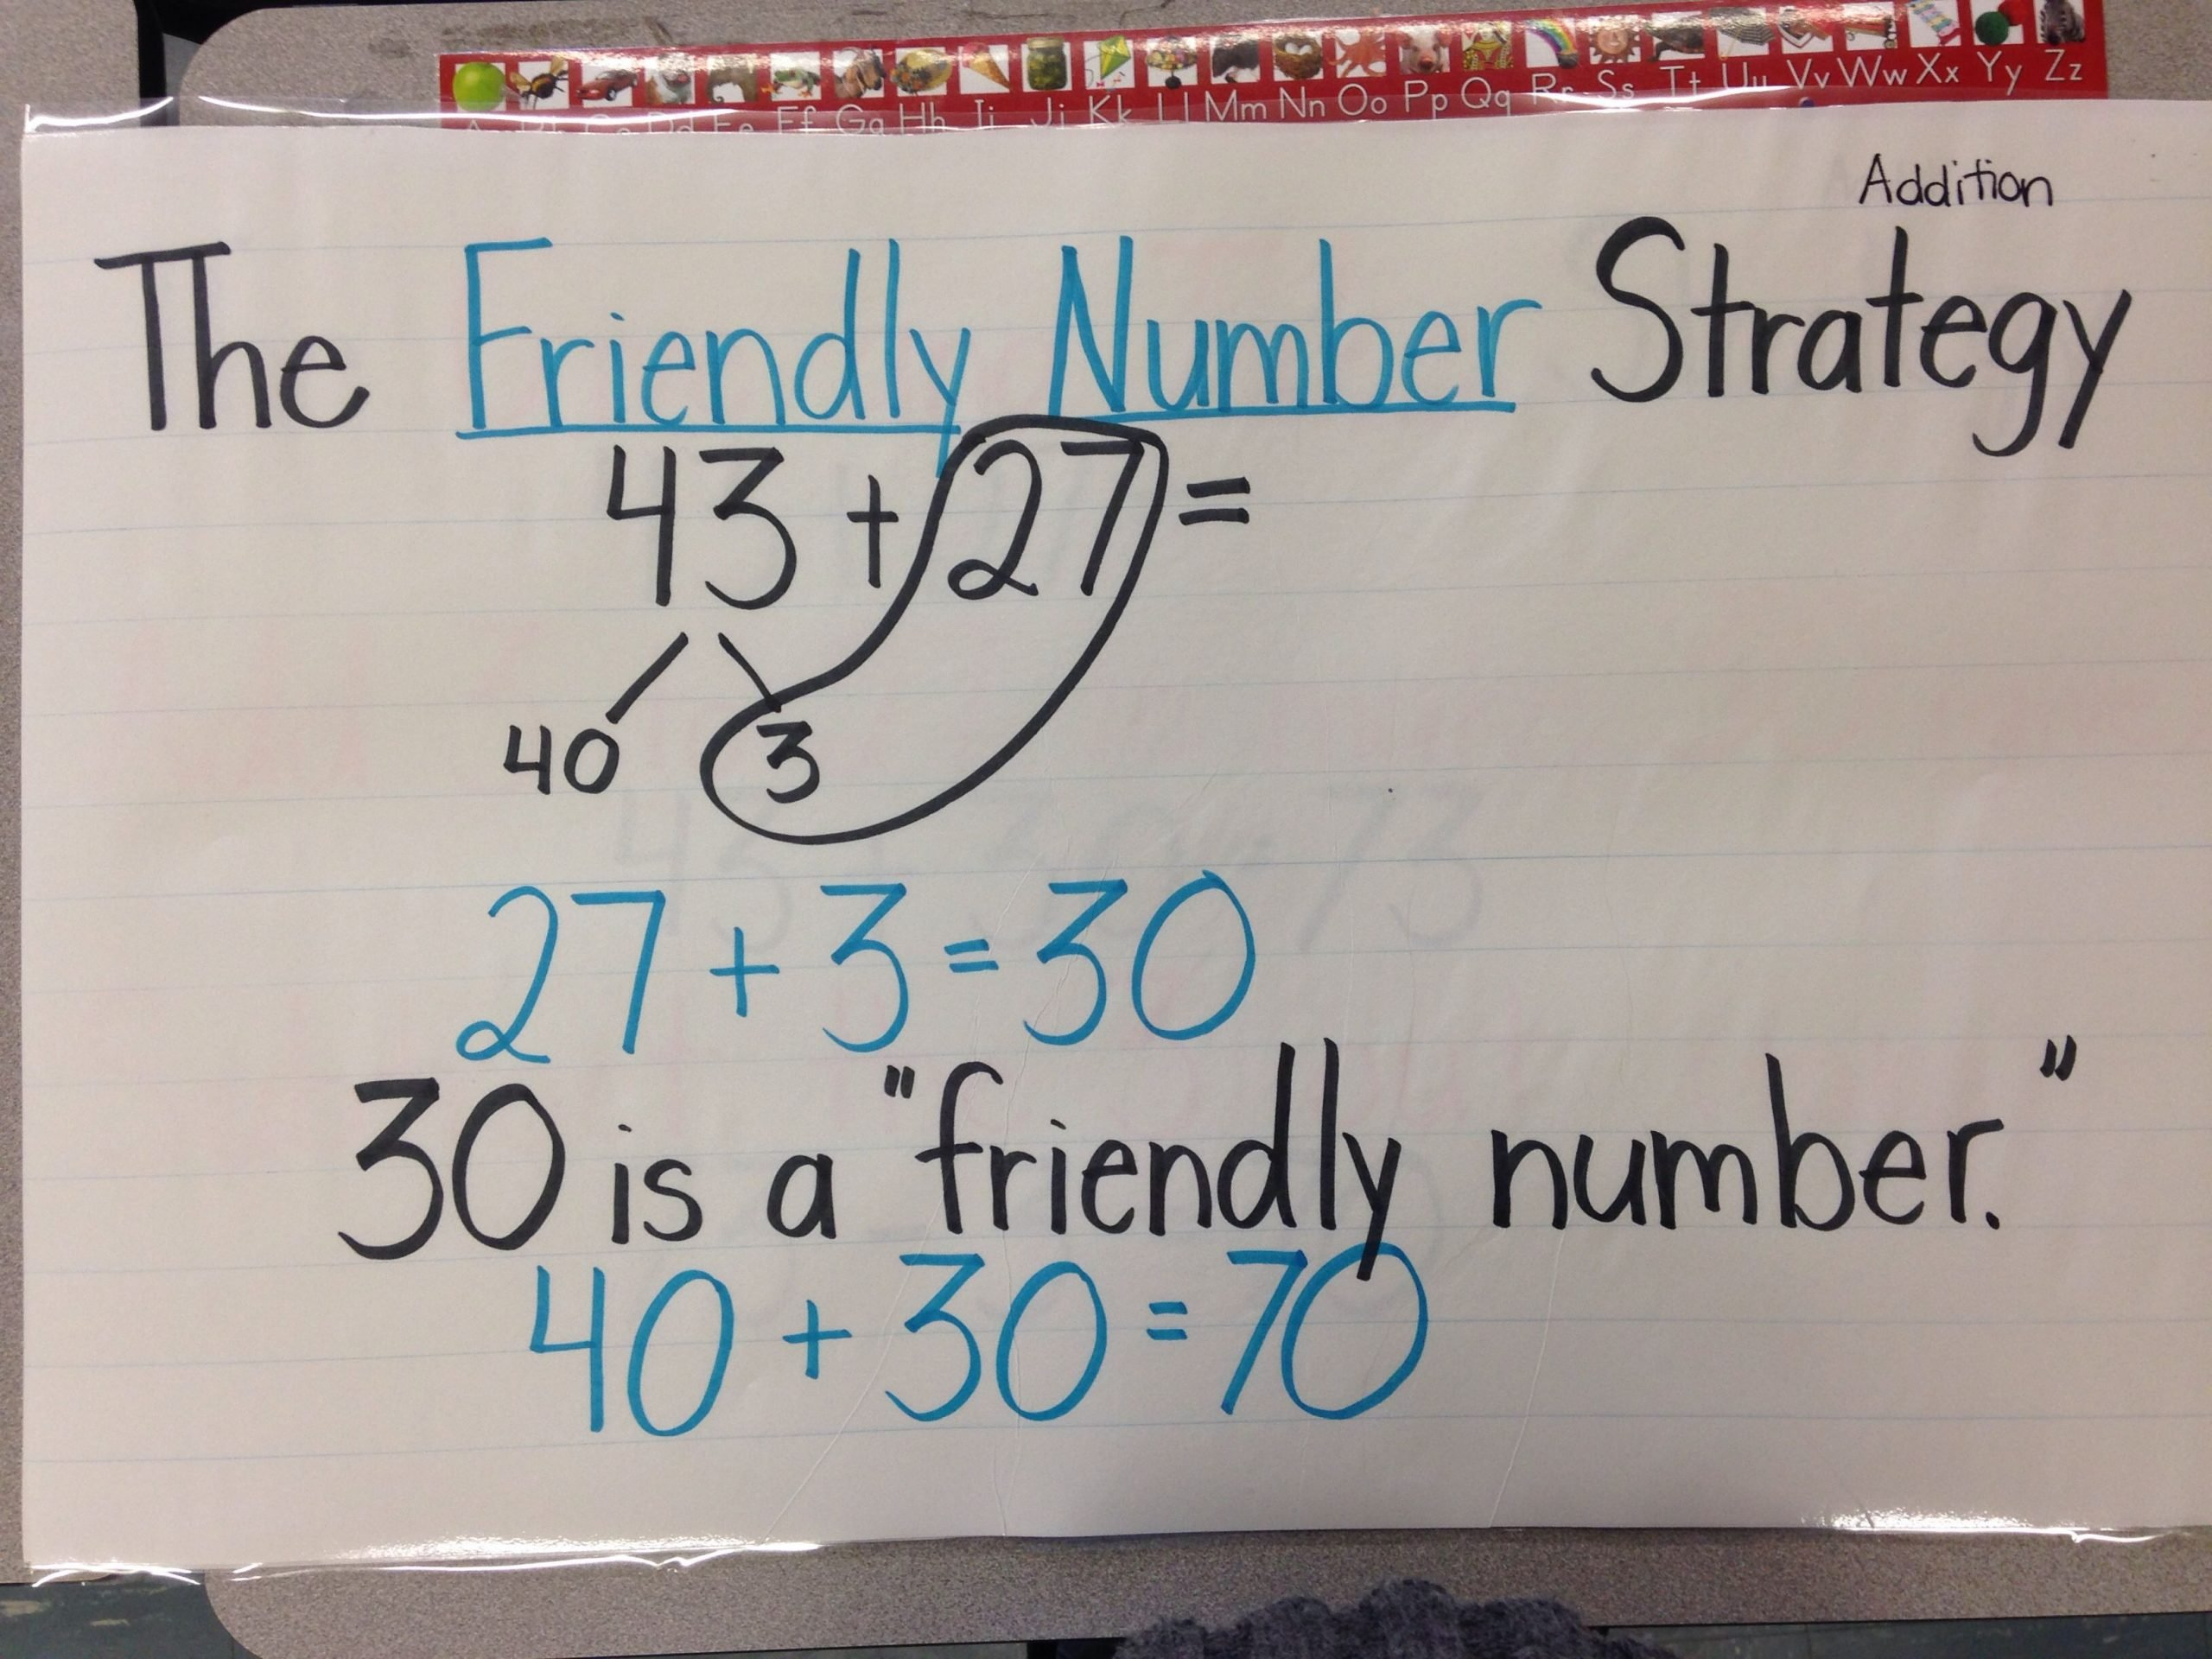 Friendly Numbers Worksheet Friendly Number Strategy for Addition